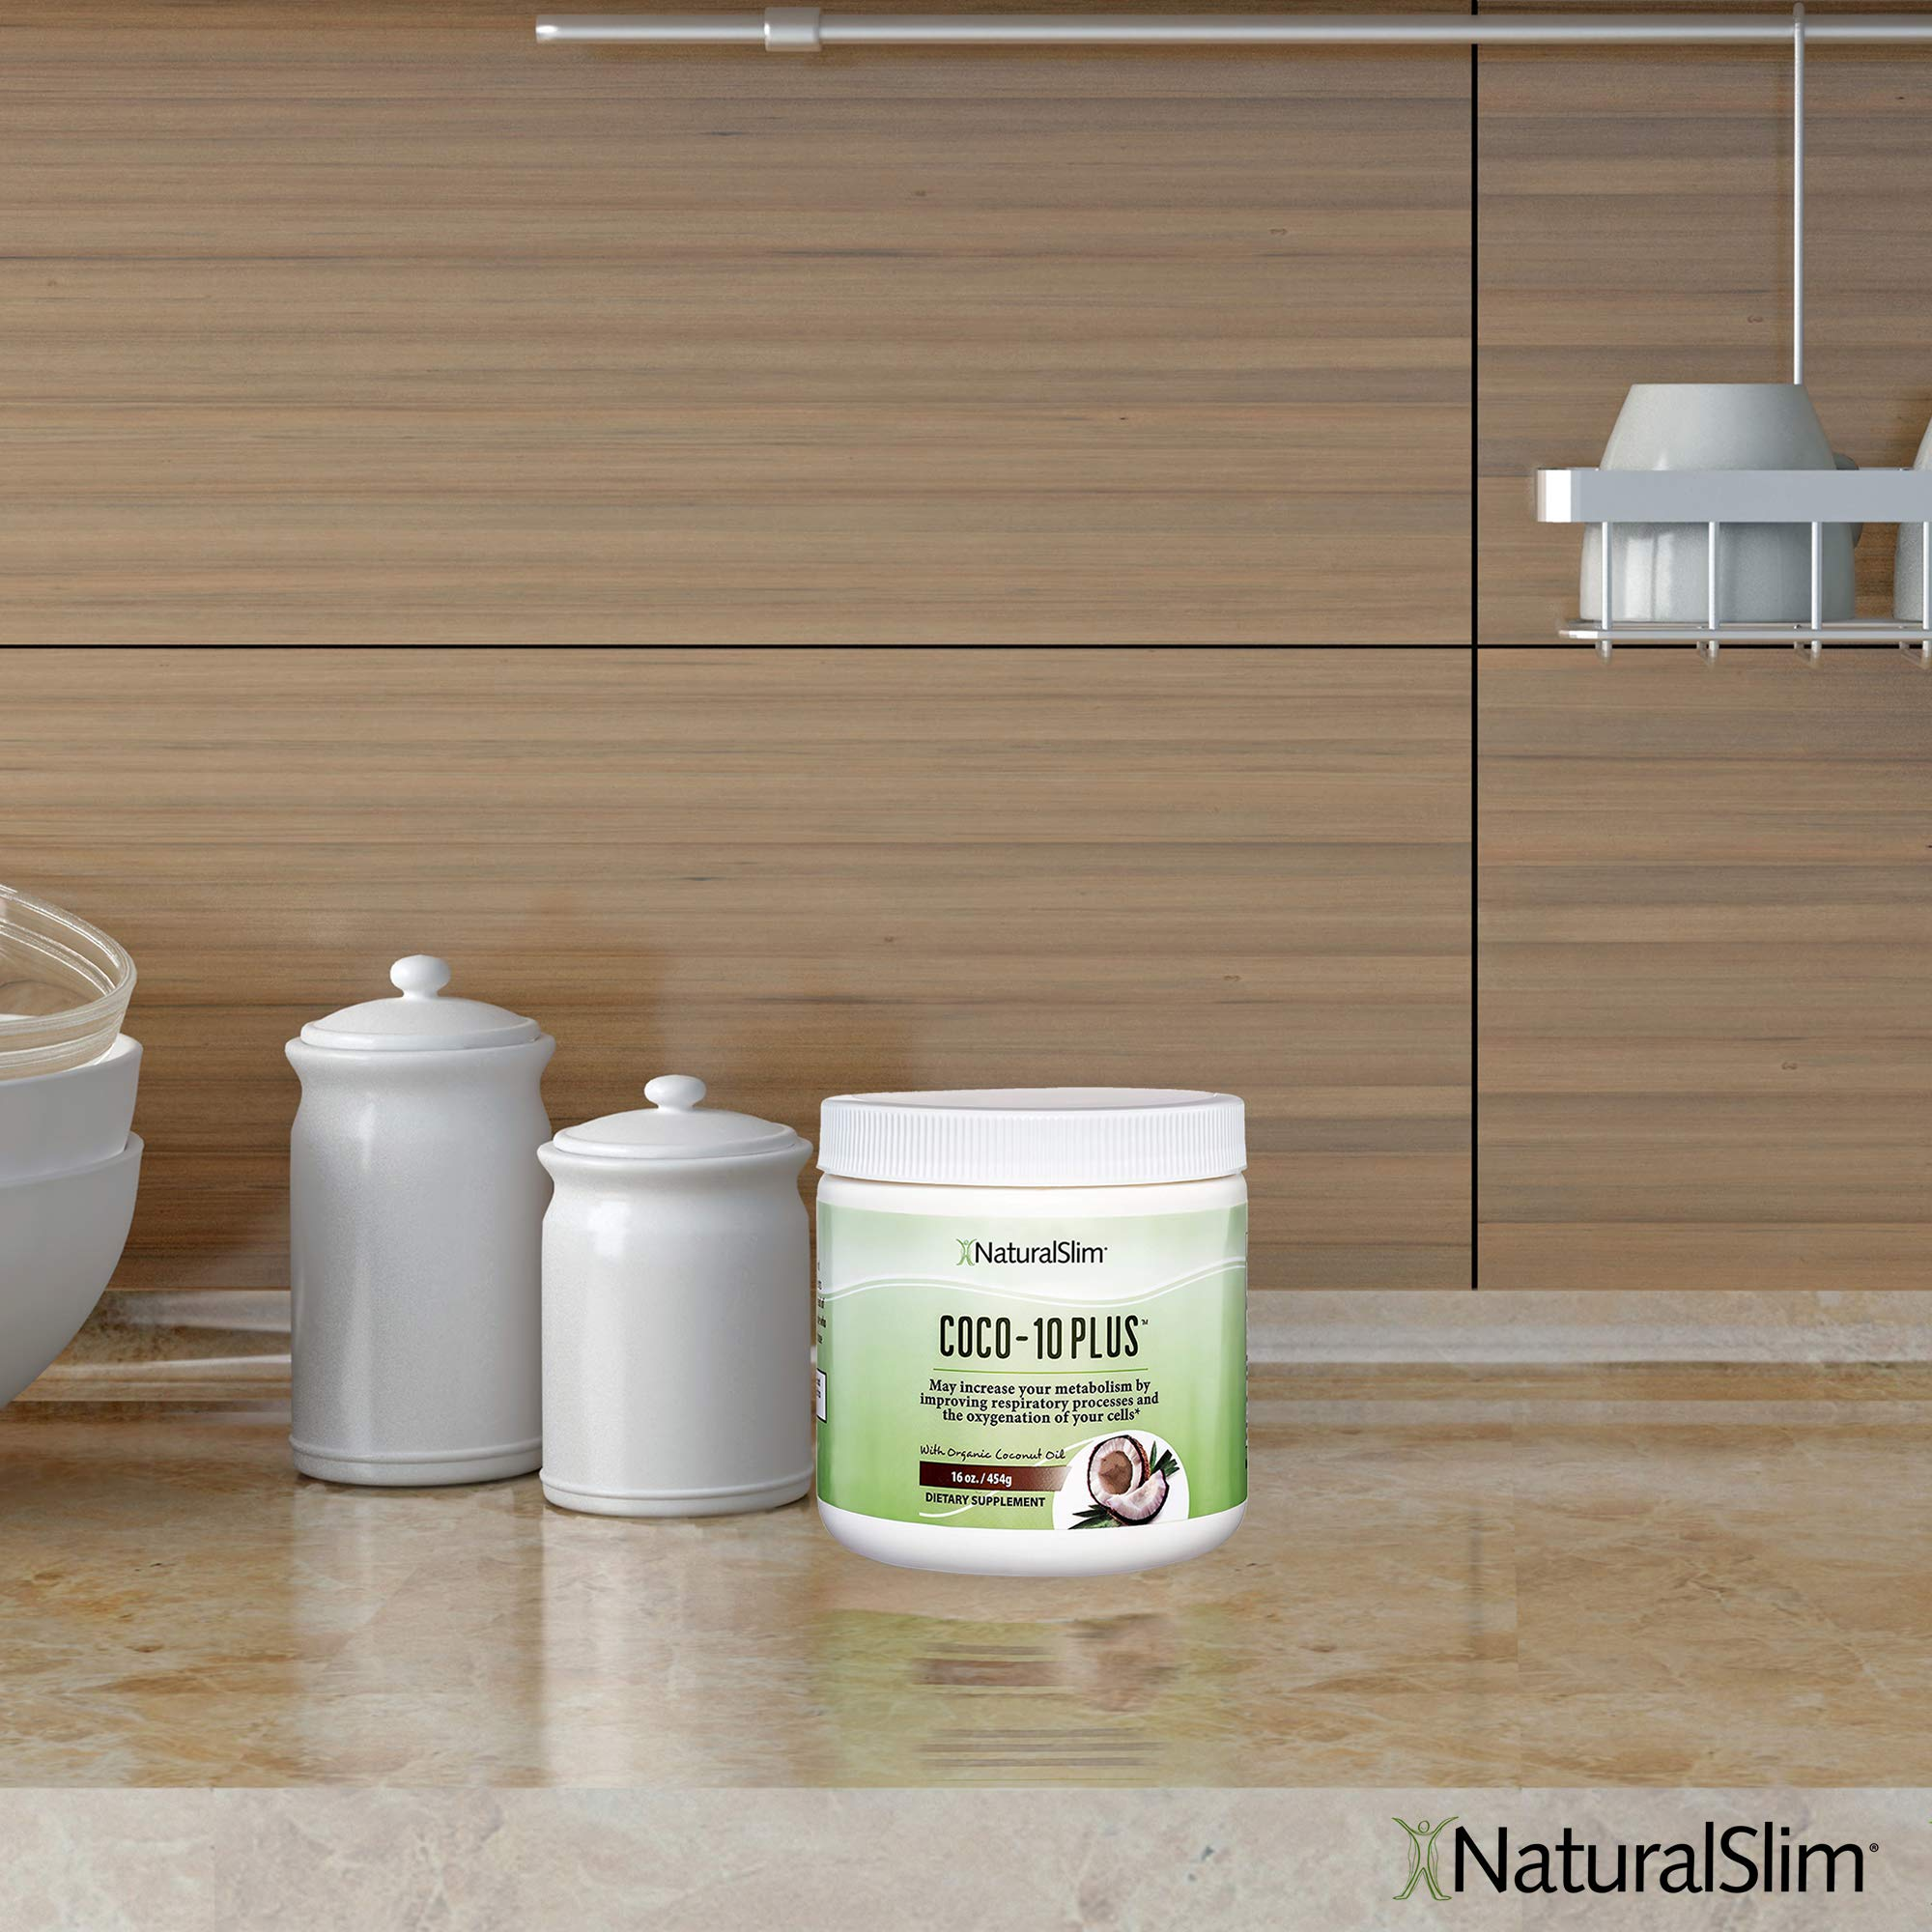 NaturalSlim''Super'' Organic Coconut Oil with CoQ10, Formulated by Obesity and Metabolism Specialist to Improve Energy Levels and Assist with Weight Loss - Natural Fat Burner to Any Diet Attempt 16 Oz by RelaxSlim  (Image #7)